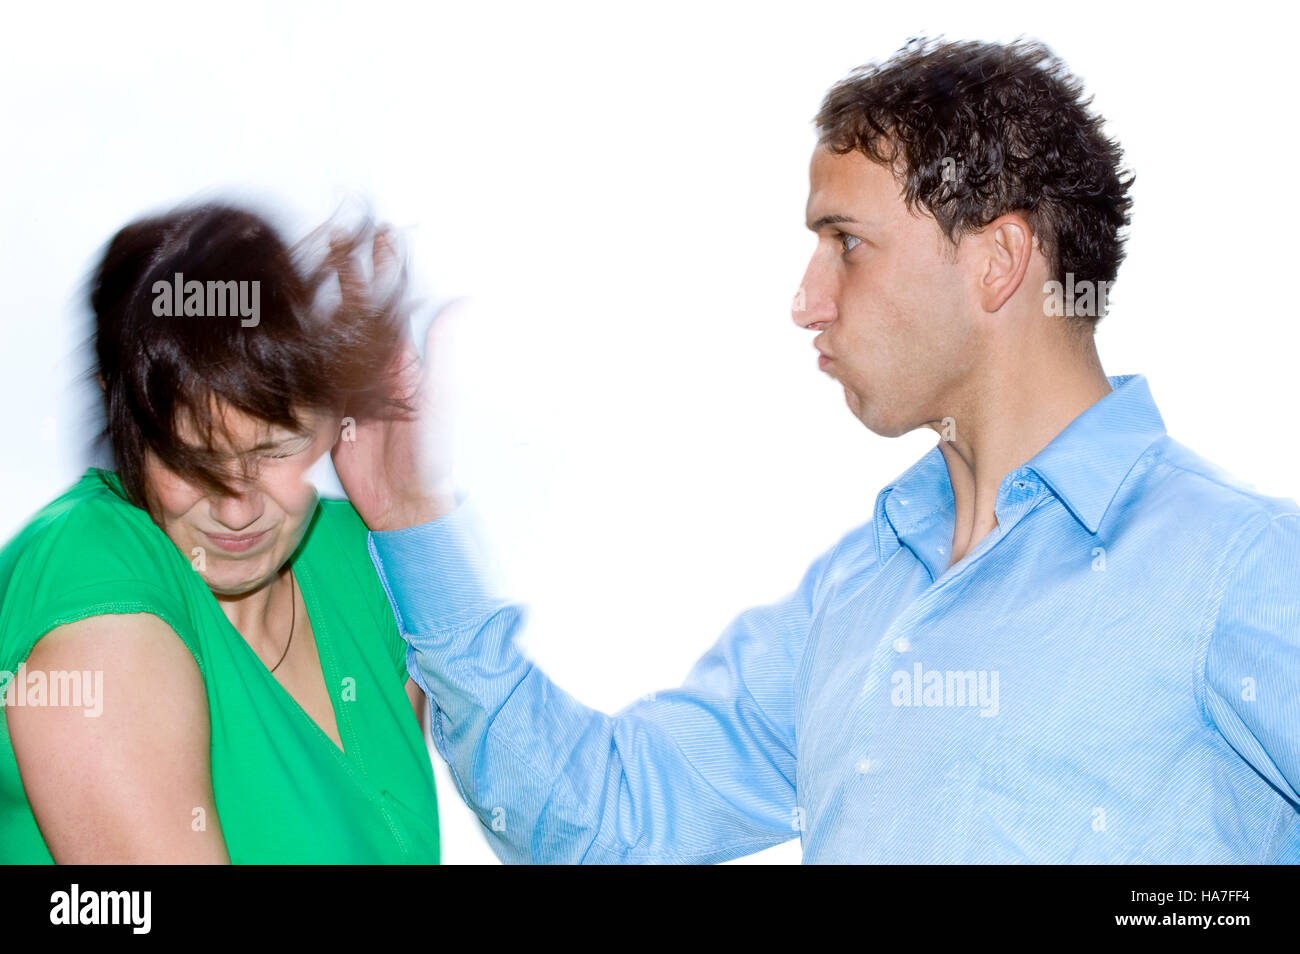 Young man slapping a woman, posed scene - Stock Image